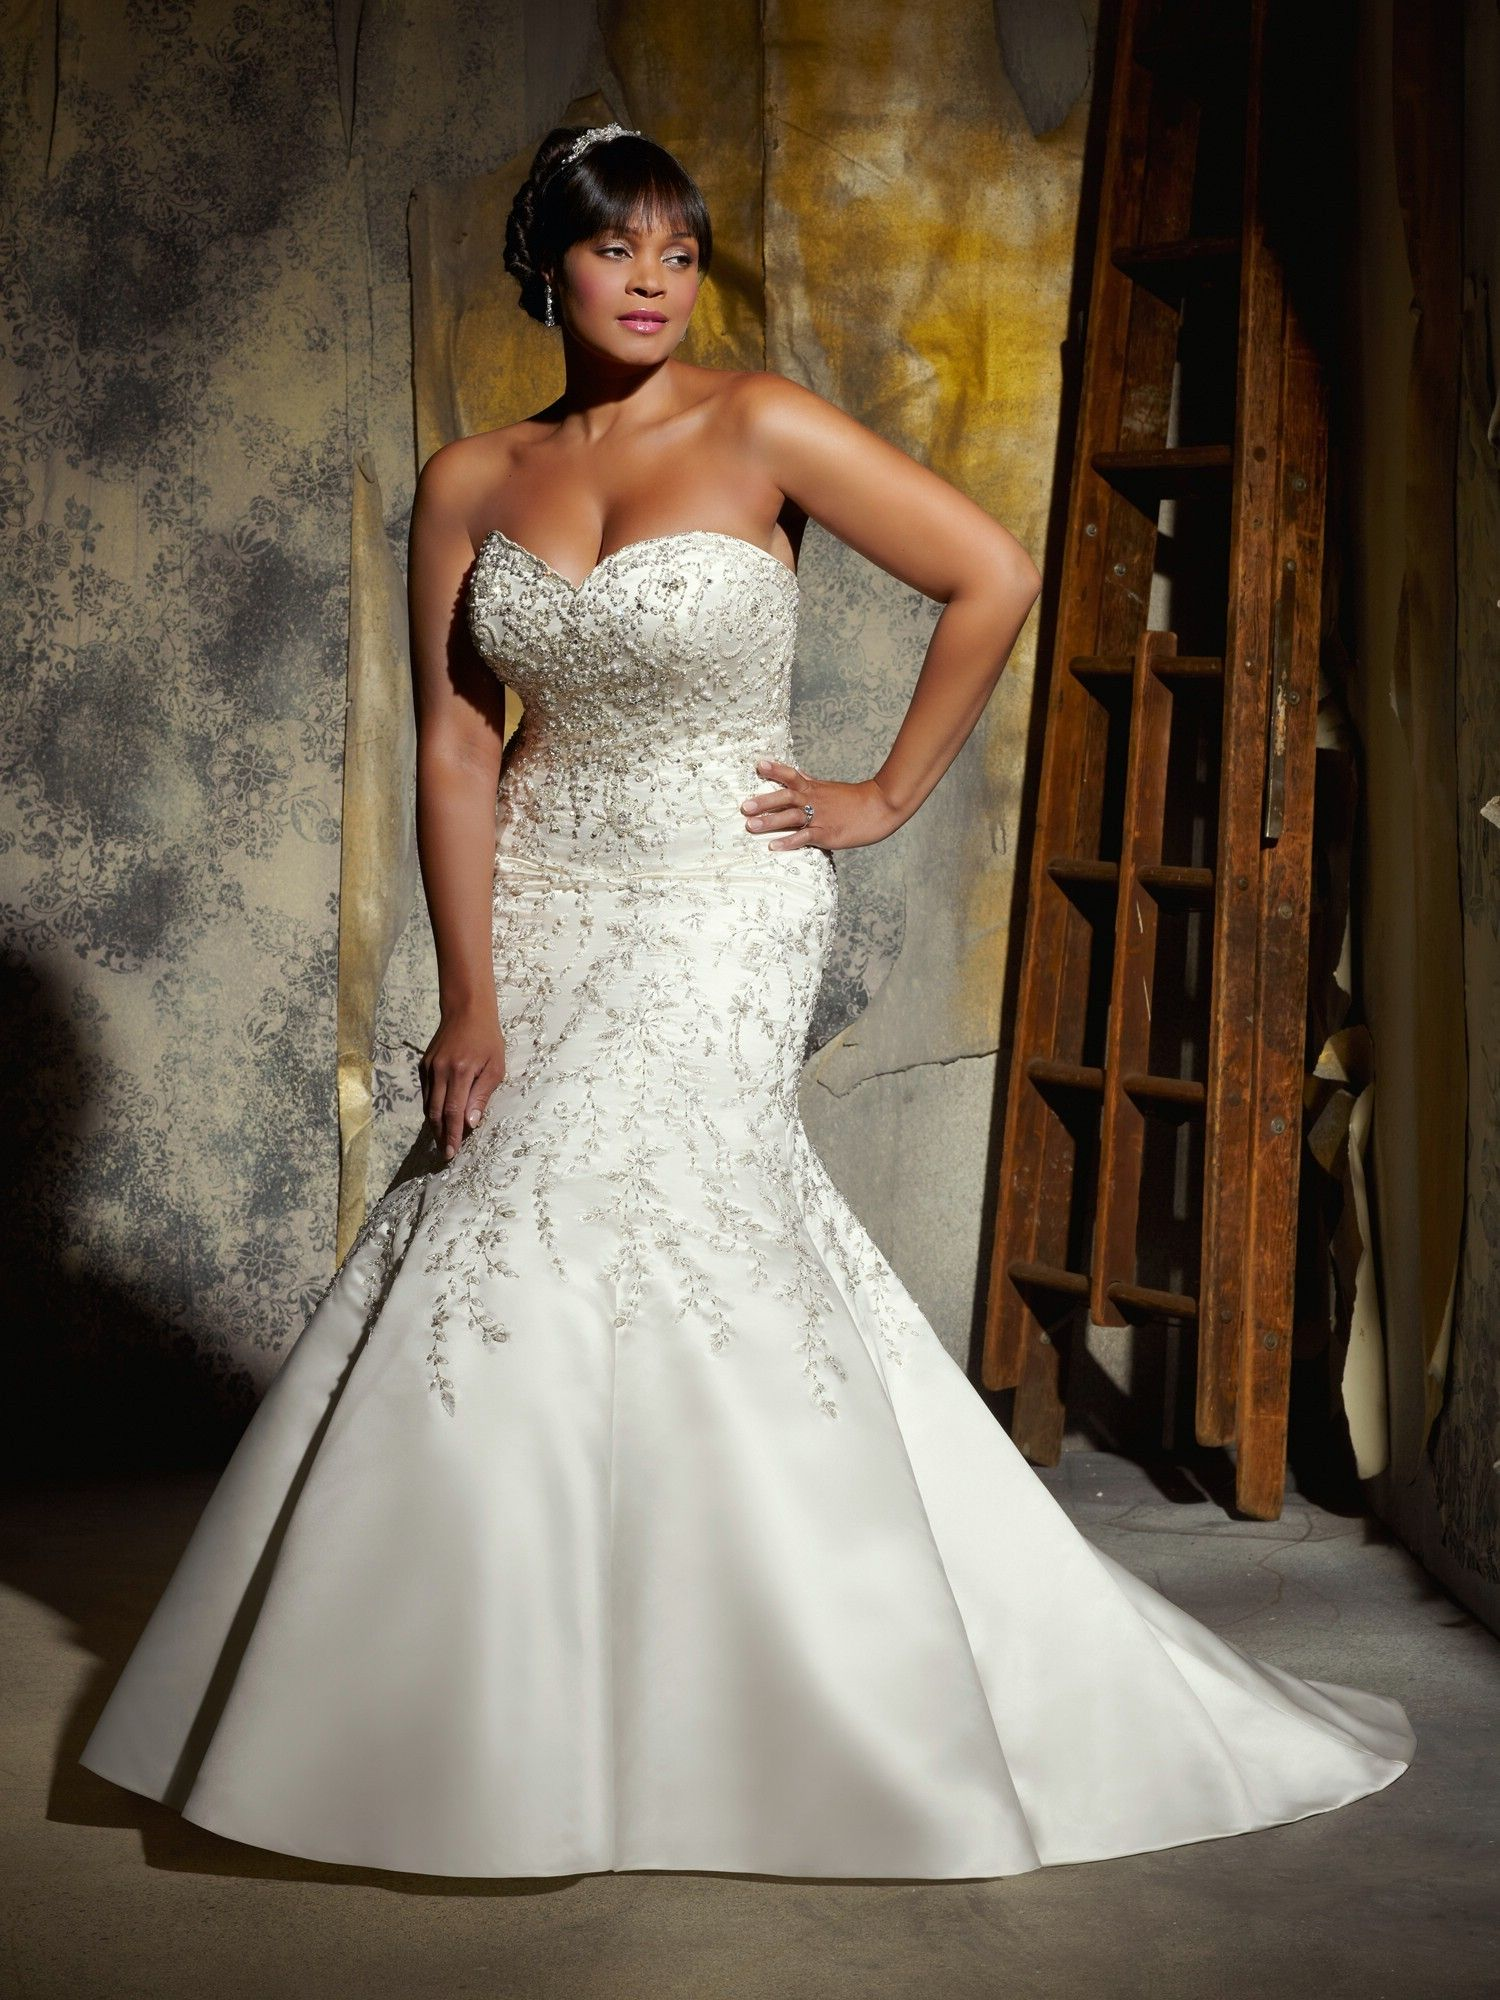 Plus size wedding dresses mermaid style google search what i plus size wedding dresses mermaid style google search ombrellifo Choice Image